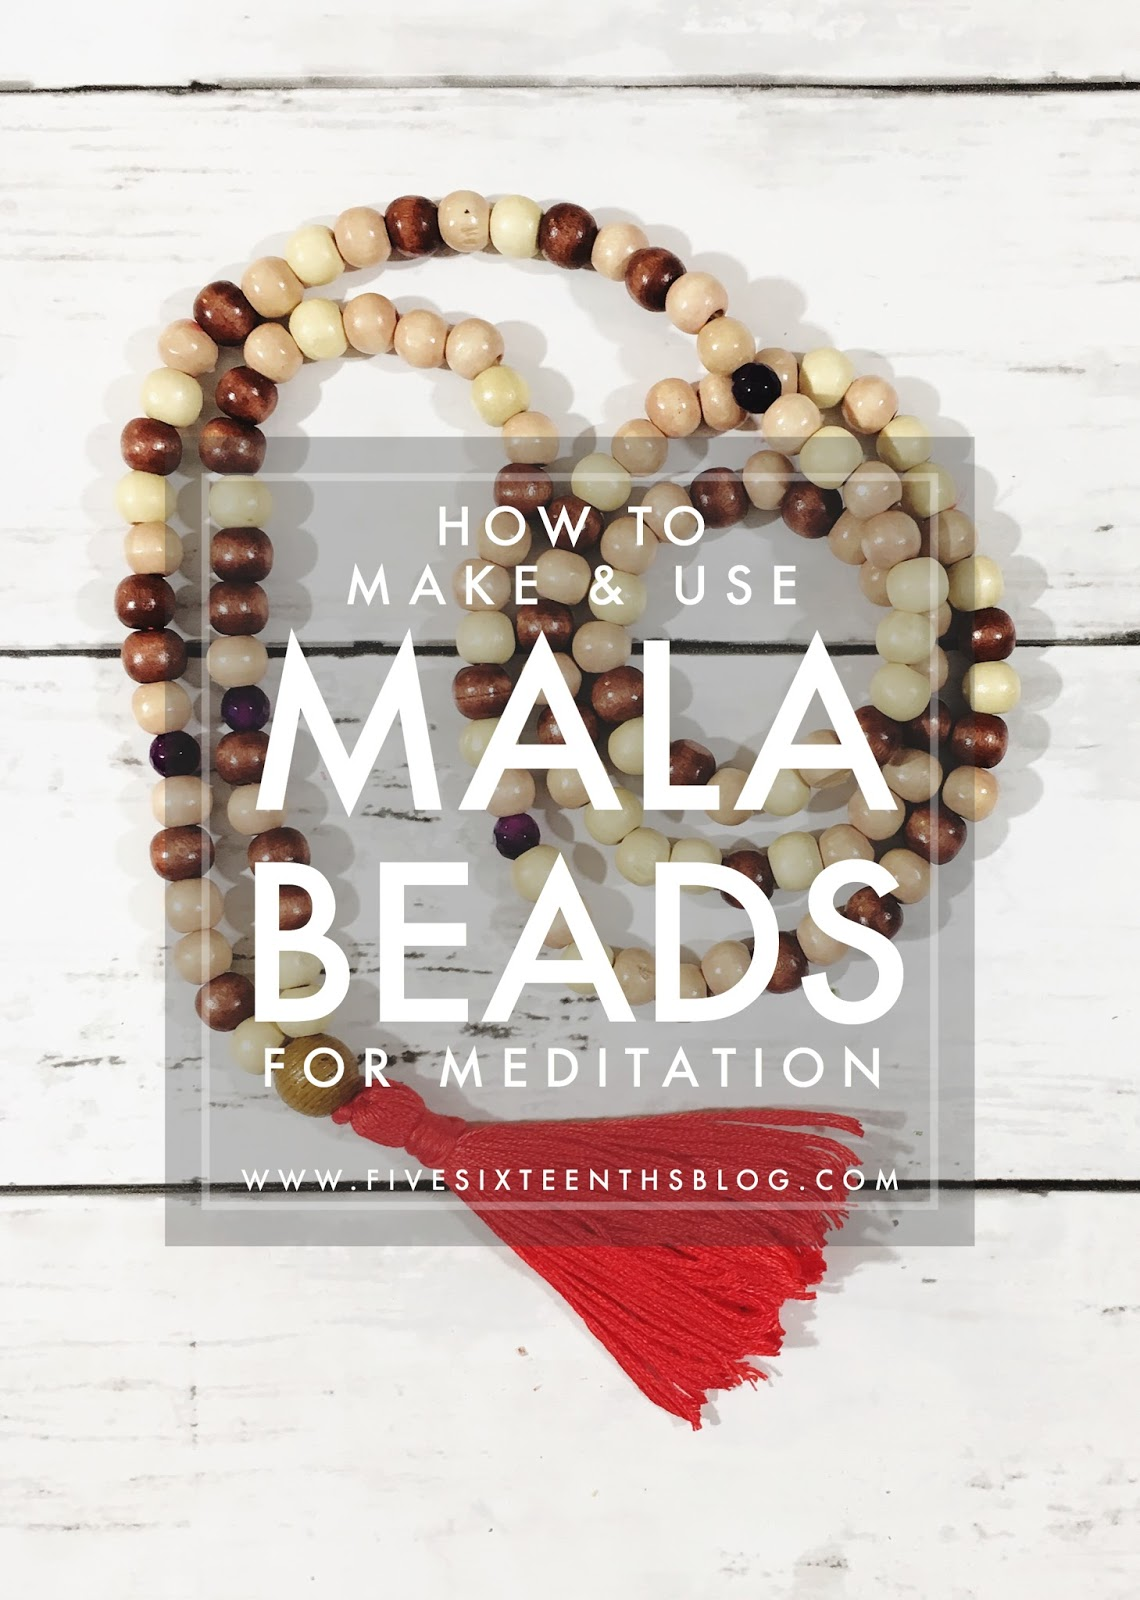 How to Make and Use Mala Beads